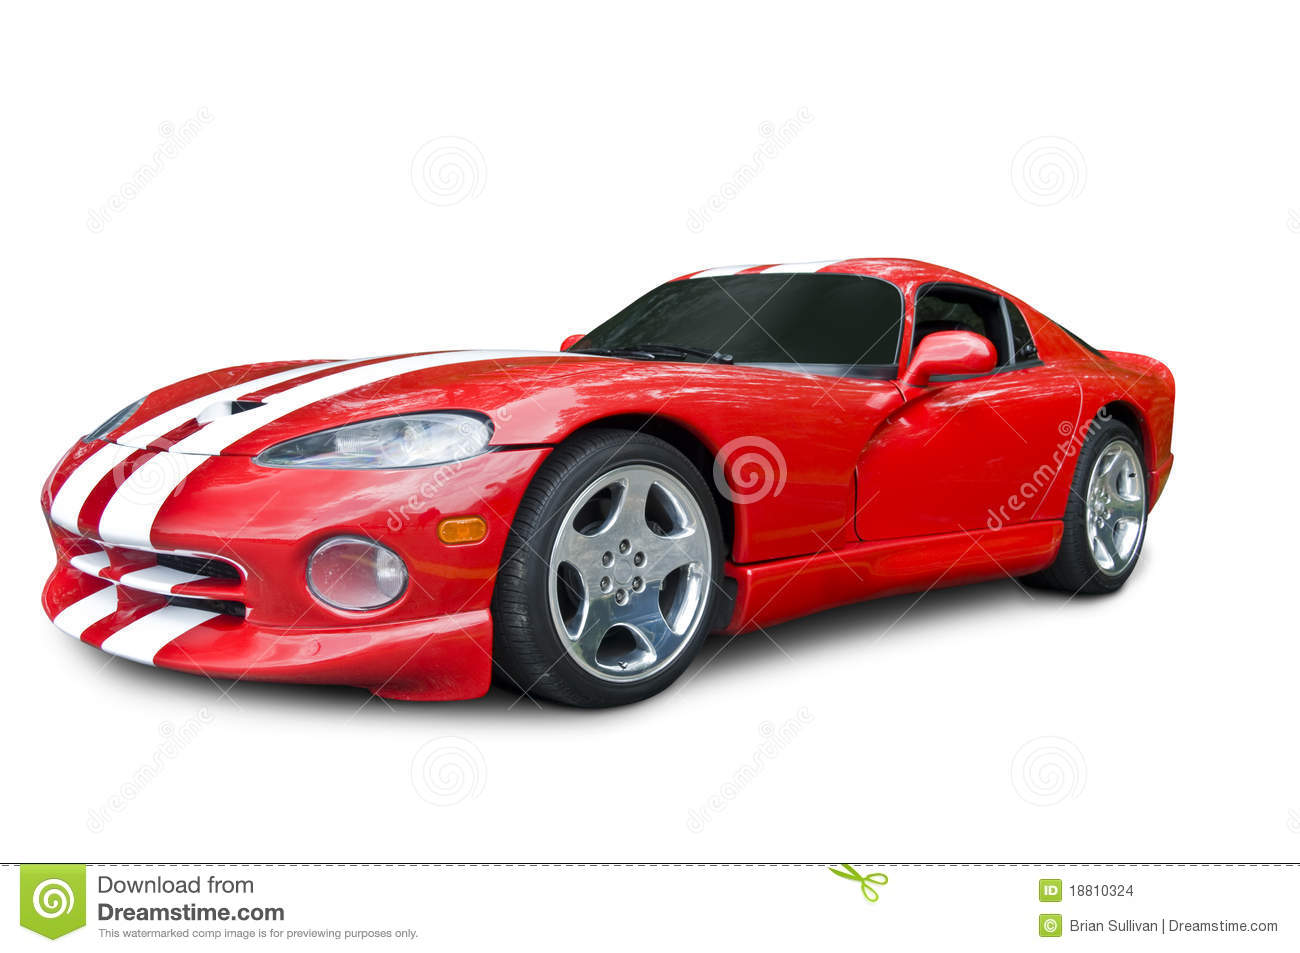 Red Dodge Viper Sports Car Stock Photo Image Of Automobile - Red sports car